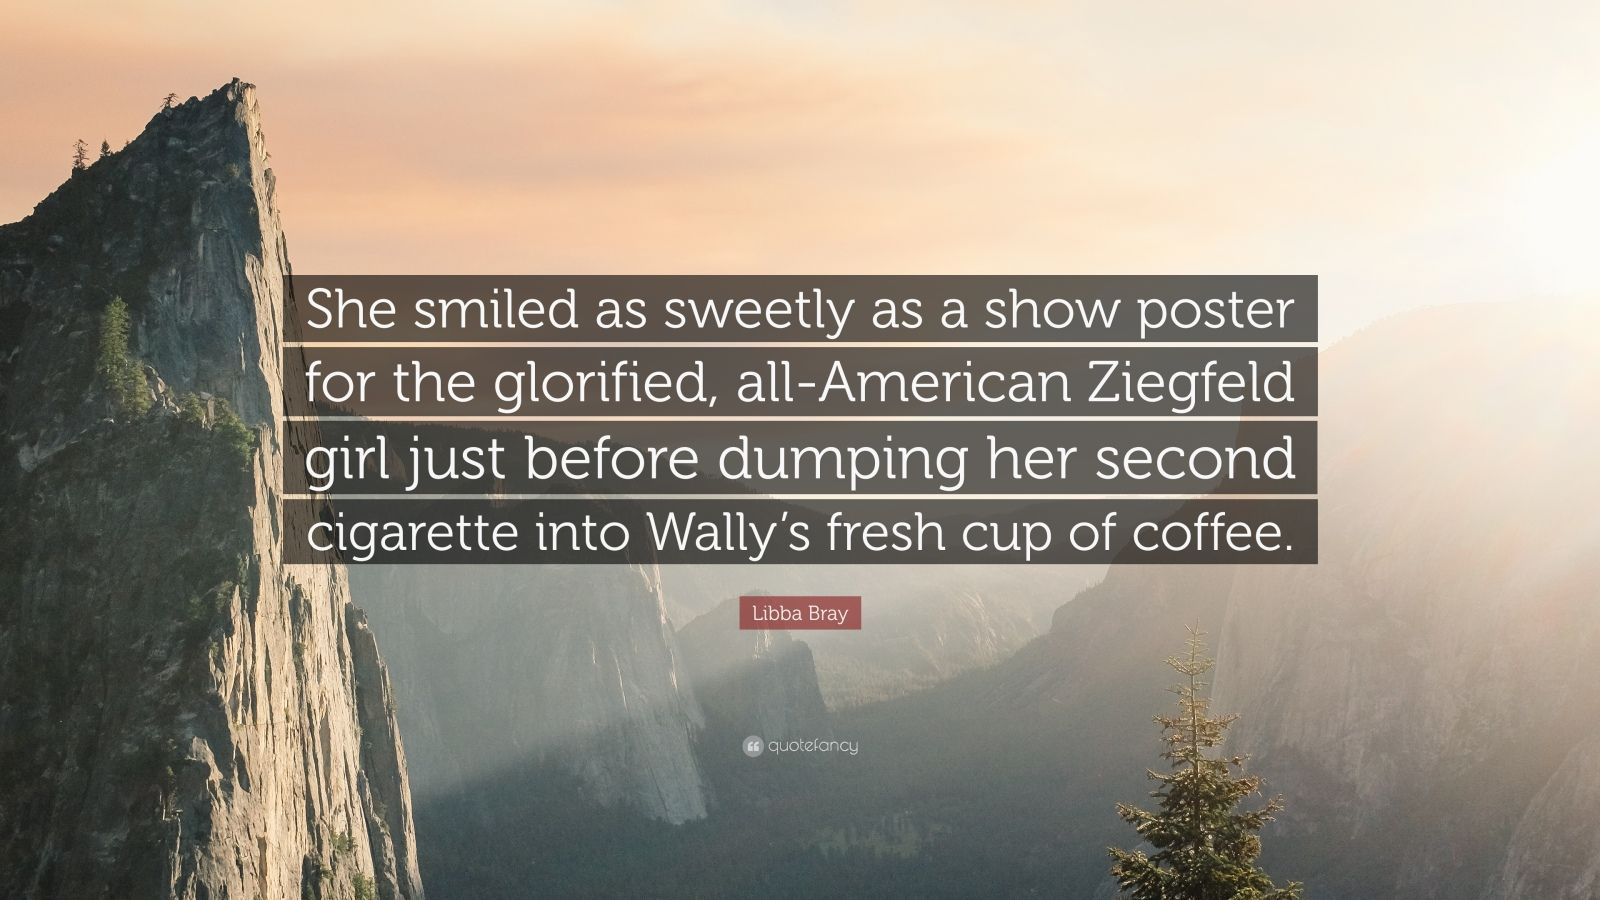 """Libba Bray Quote: """"She smiled as sweetly as a show poster for the glorified, all-American Ziegfeld girl just before dumping her second cigarette into Wally's fresh cup of coffee."""""""